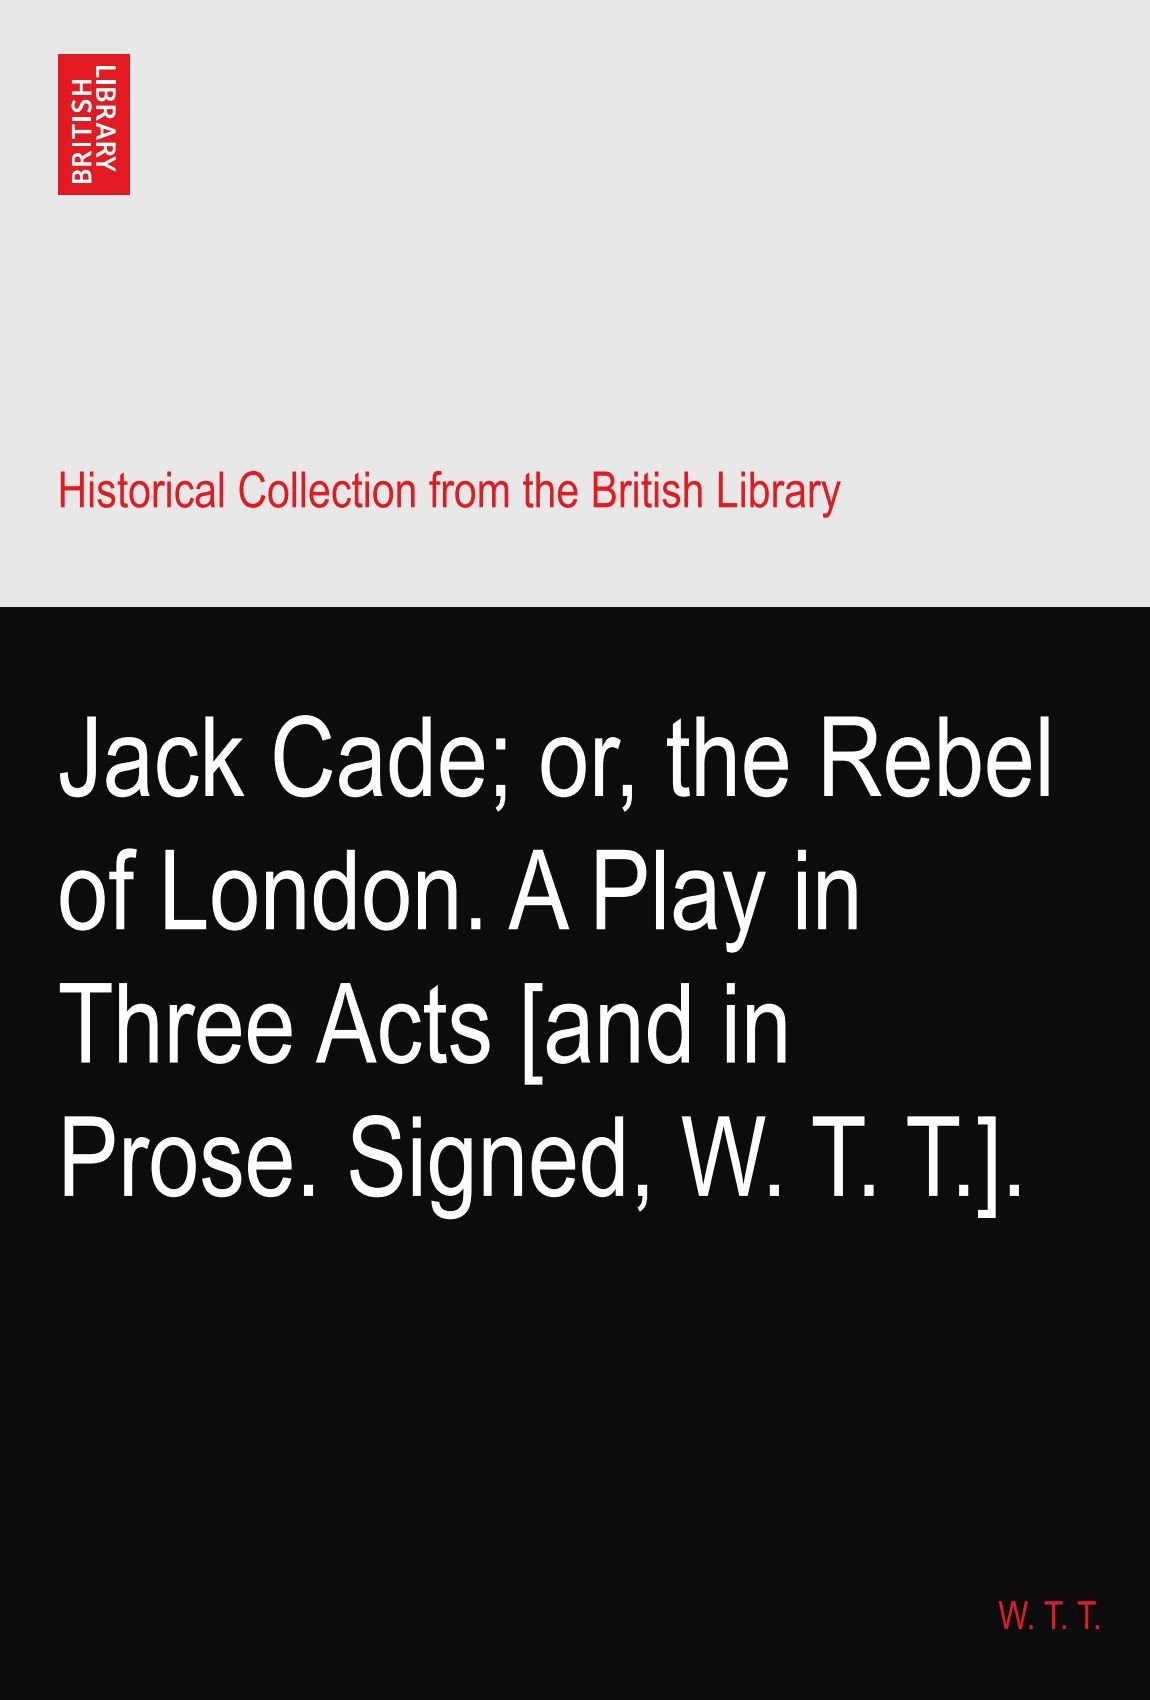 Download Jack Cade; or, the Rebel of London. A Play in Three Acts [and in Prose. Signed, W. T. T.]. ebook